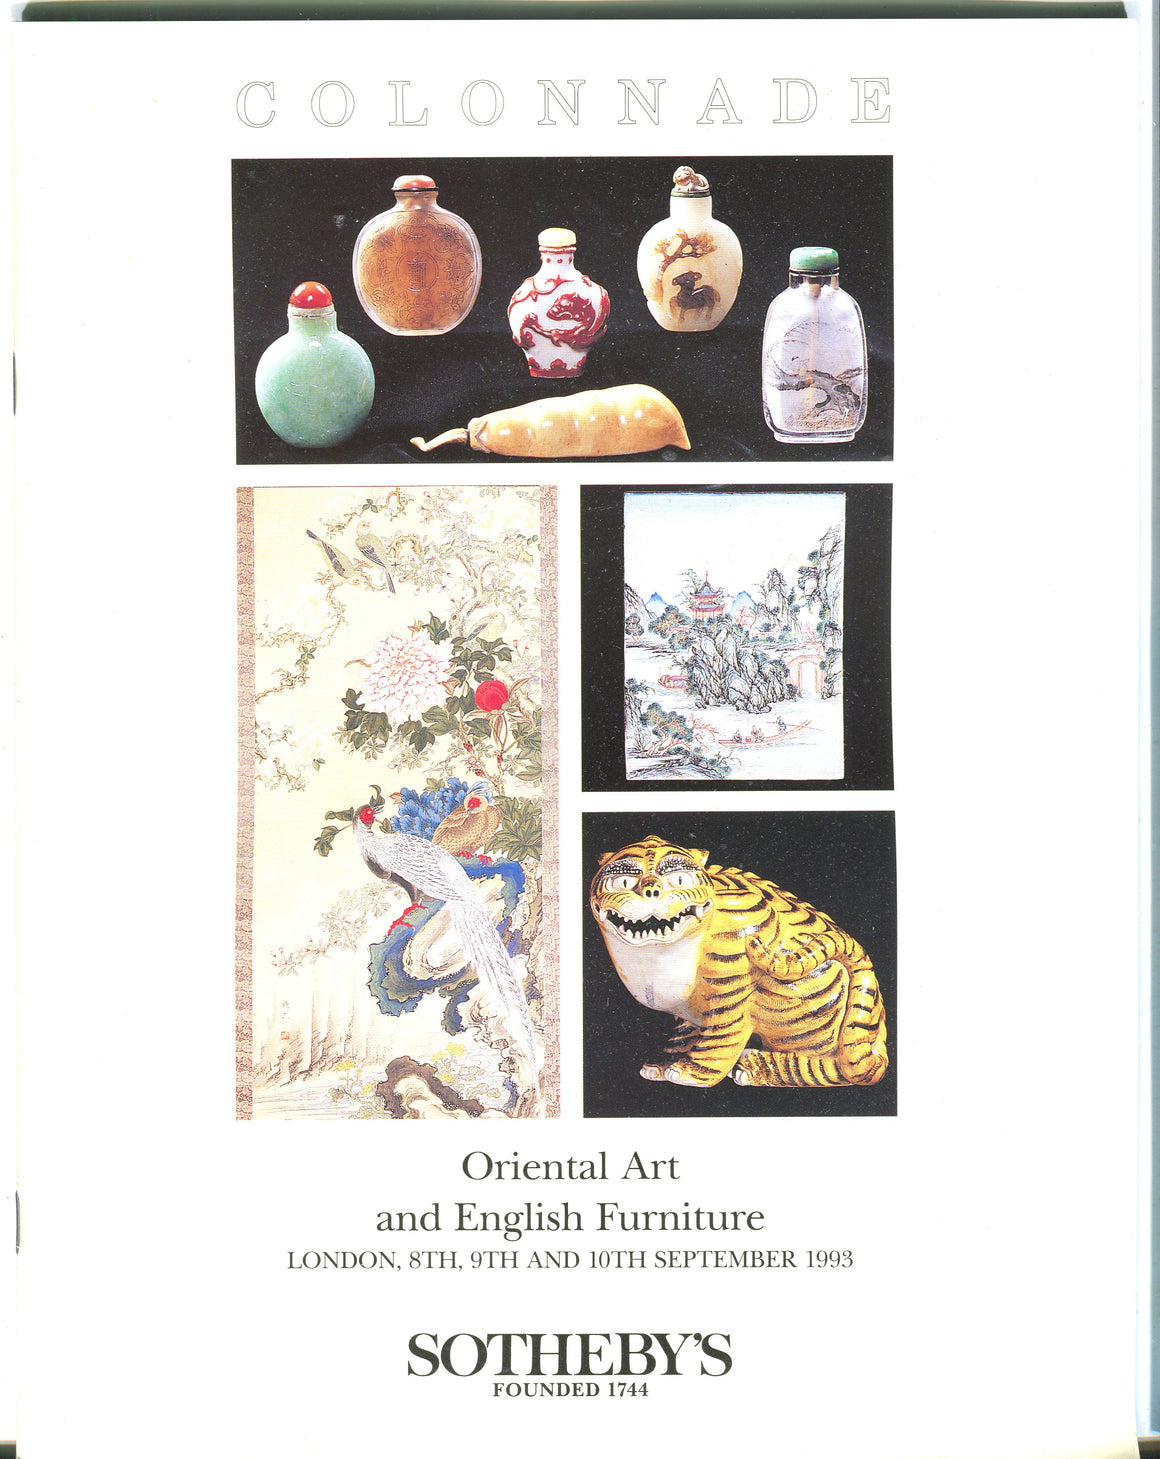 Sothebys Auction Catalog Sept 10 1993 Oriental Art & English Furniture